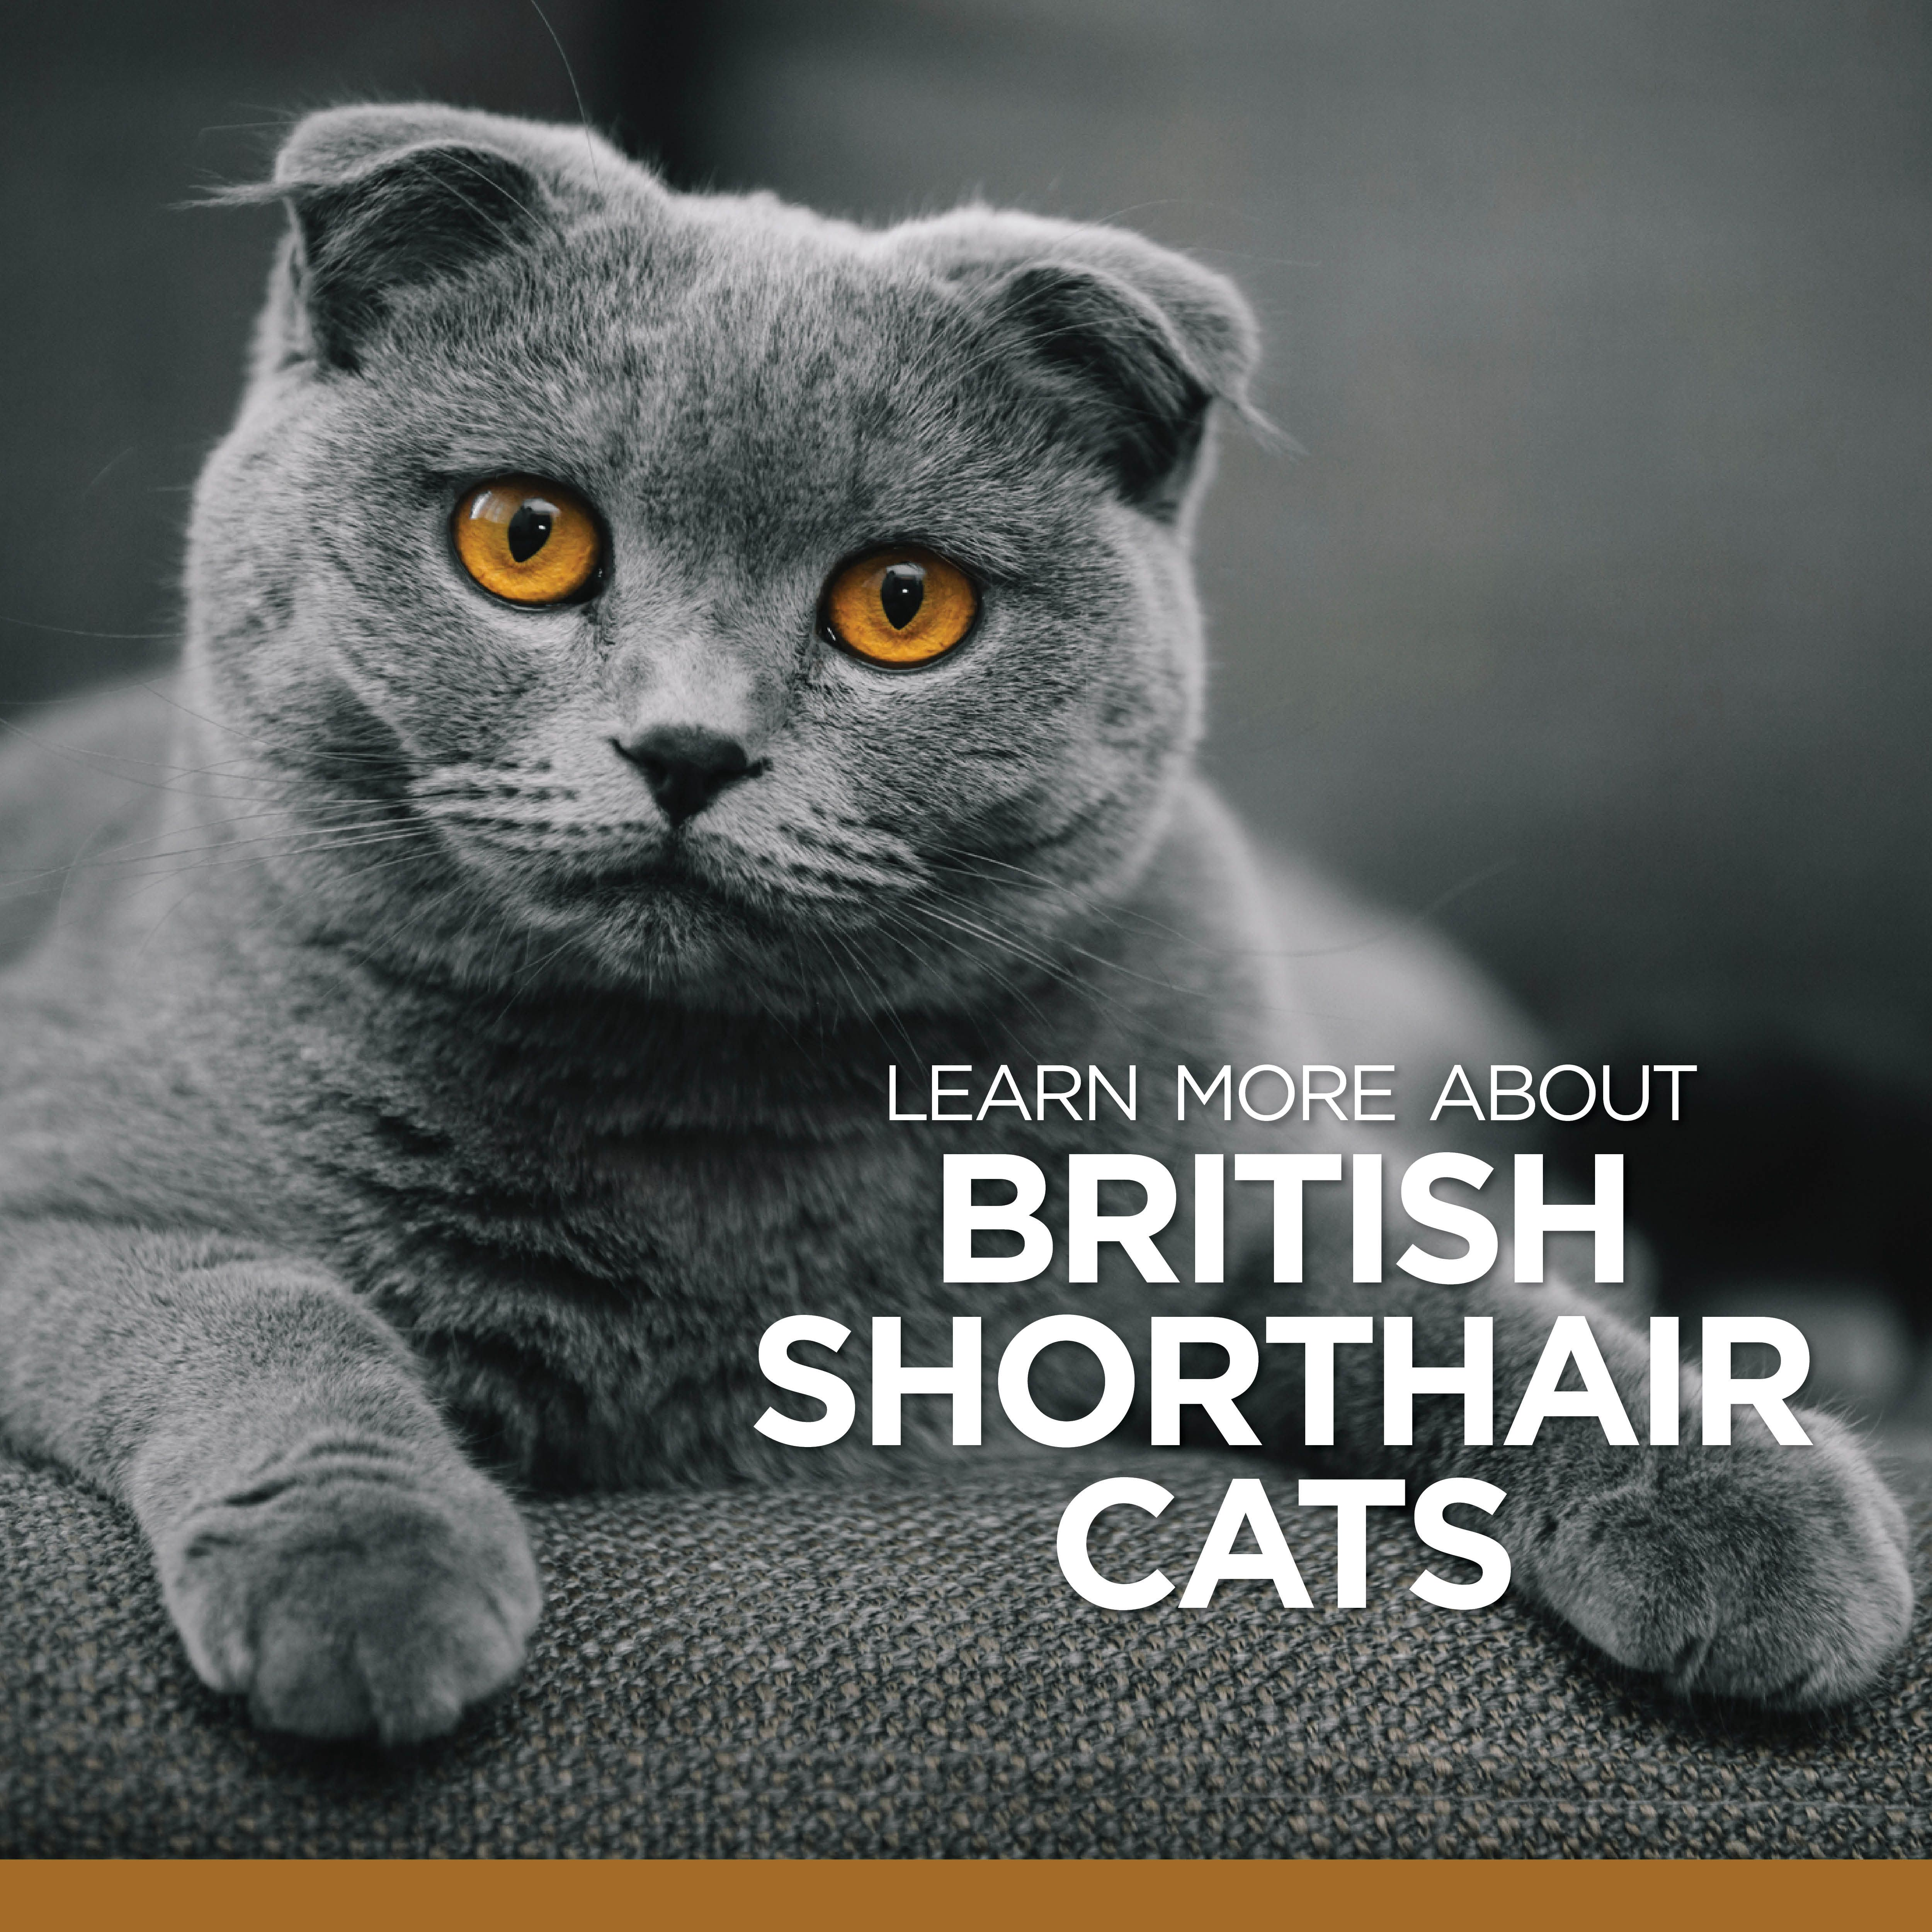 British Shorthair Cats Are Known To Be Independent Often Choosing To Sit Near Their Owners Ra British Shorthair Cats British Shorthair Most Popular Cat Breeds